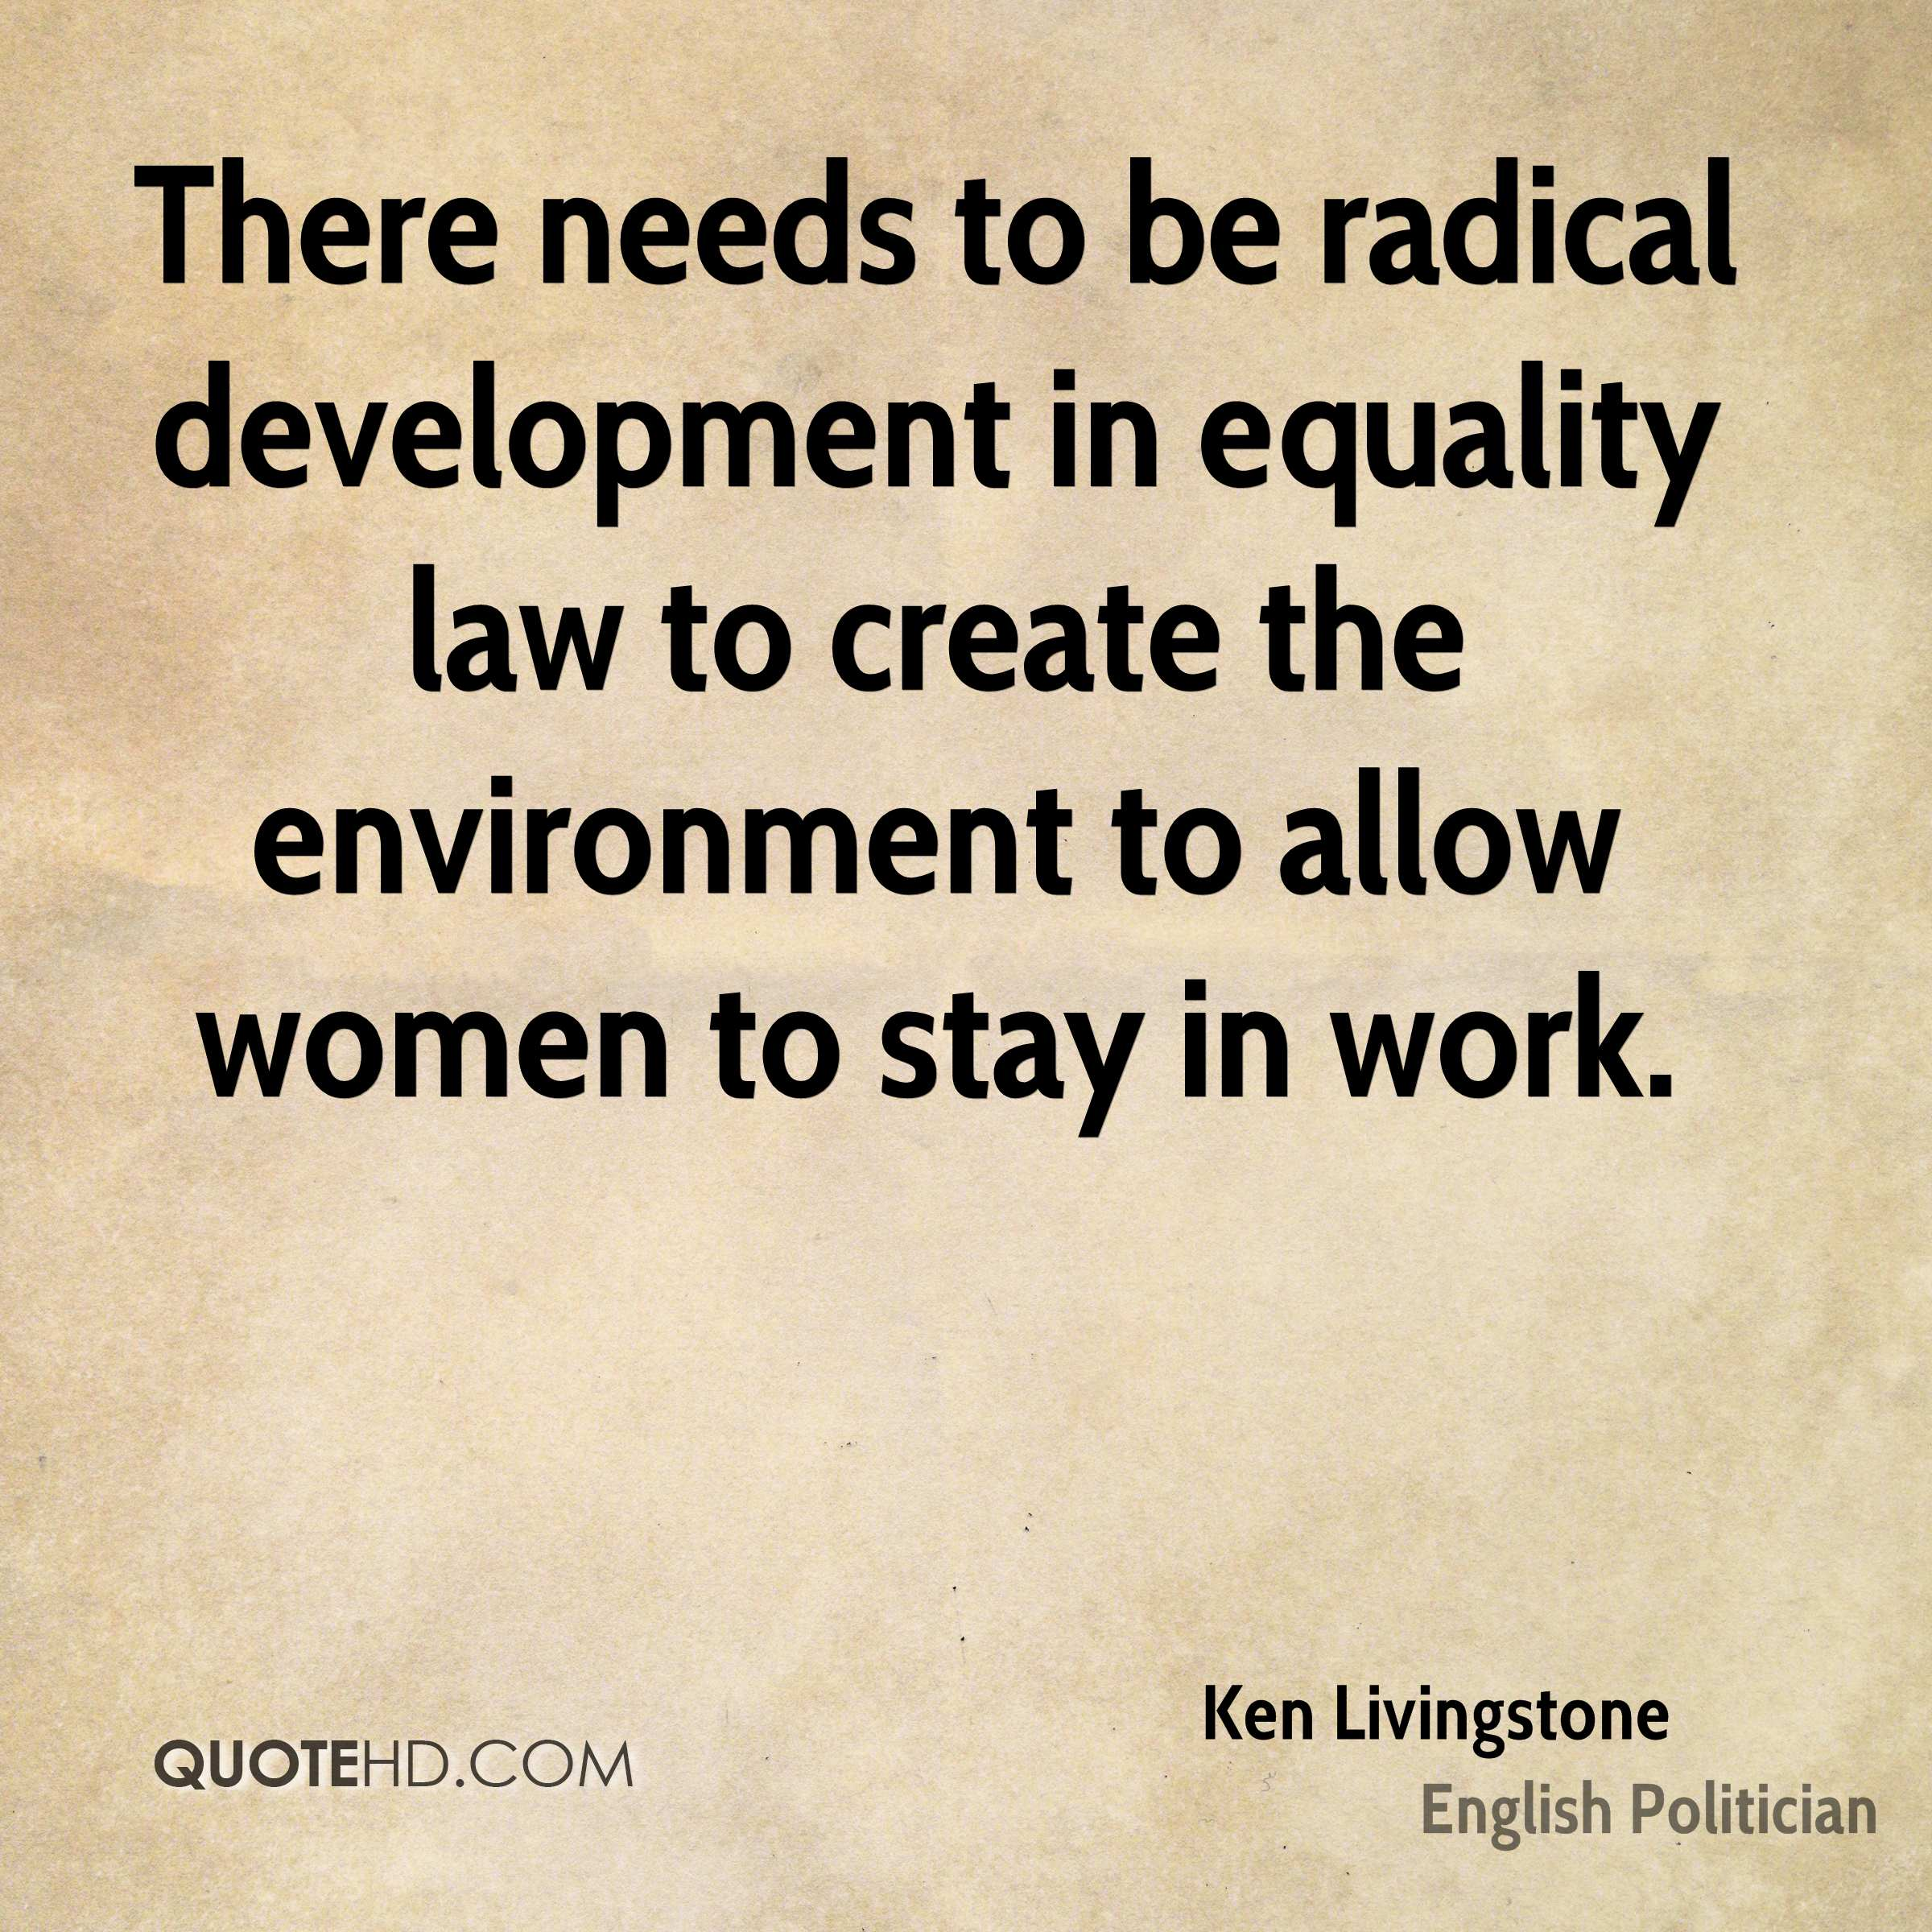 There needs to be radical development in equality law to create the environment to allow women to stay in work.